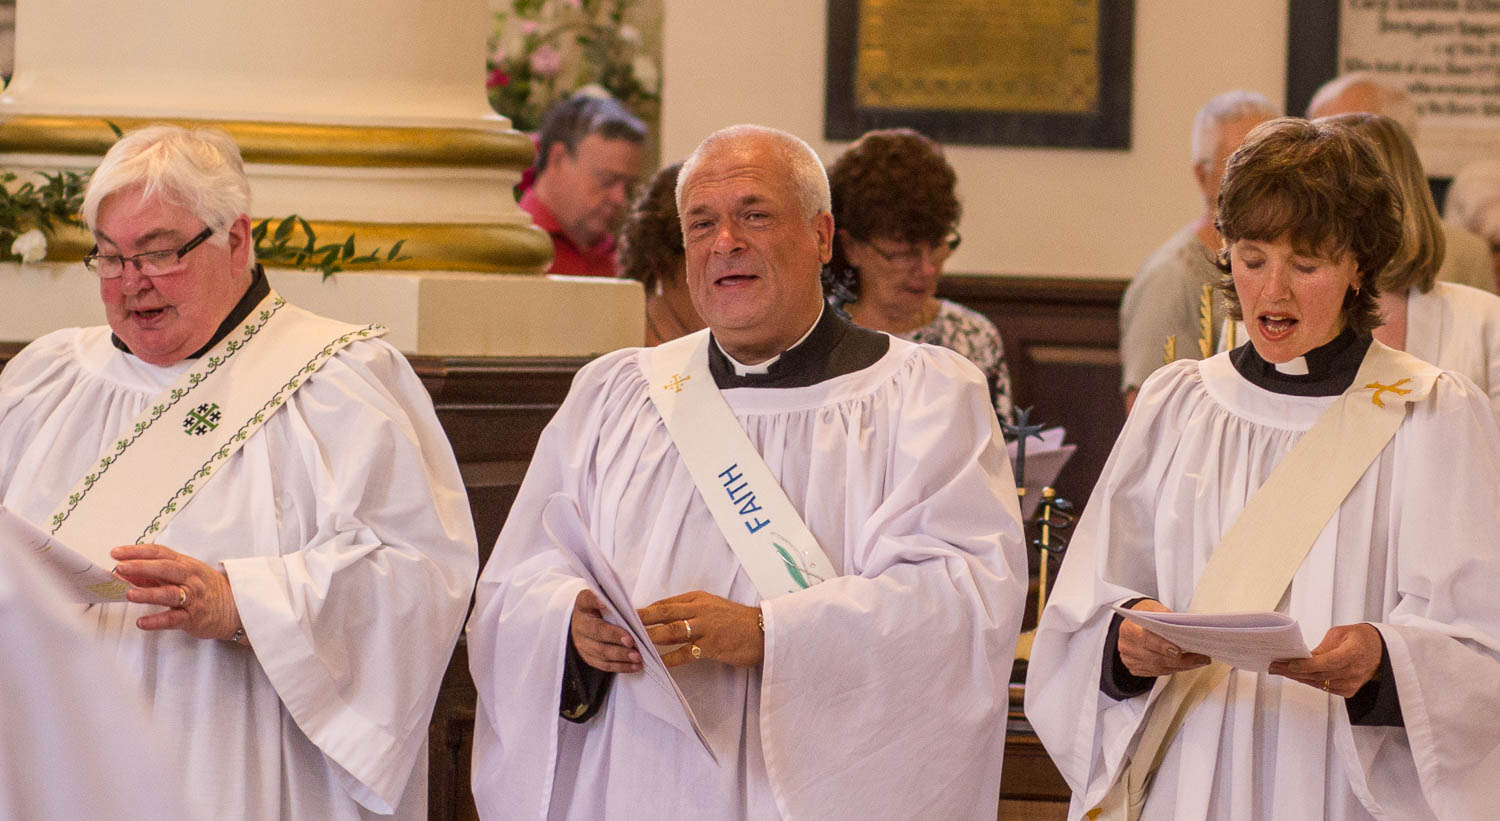 ordinations 2018 4824 1500 72dpi social